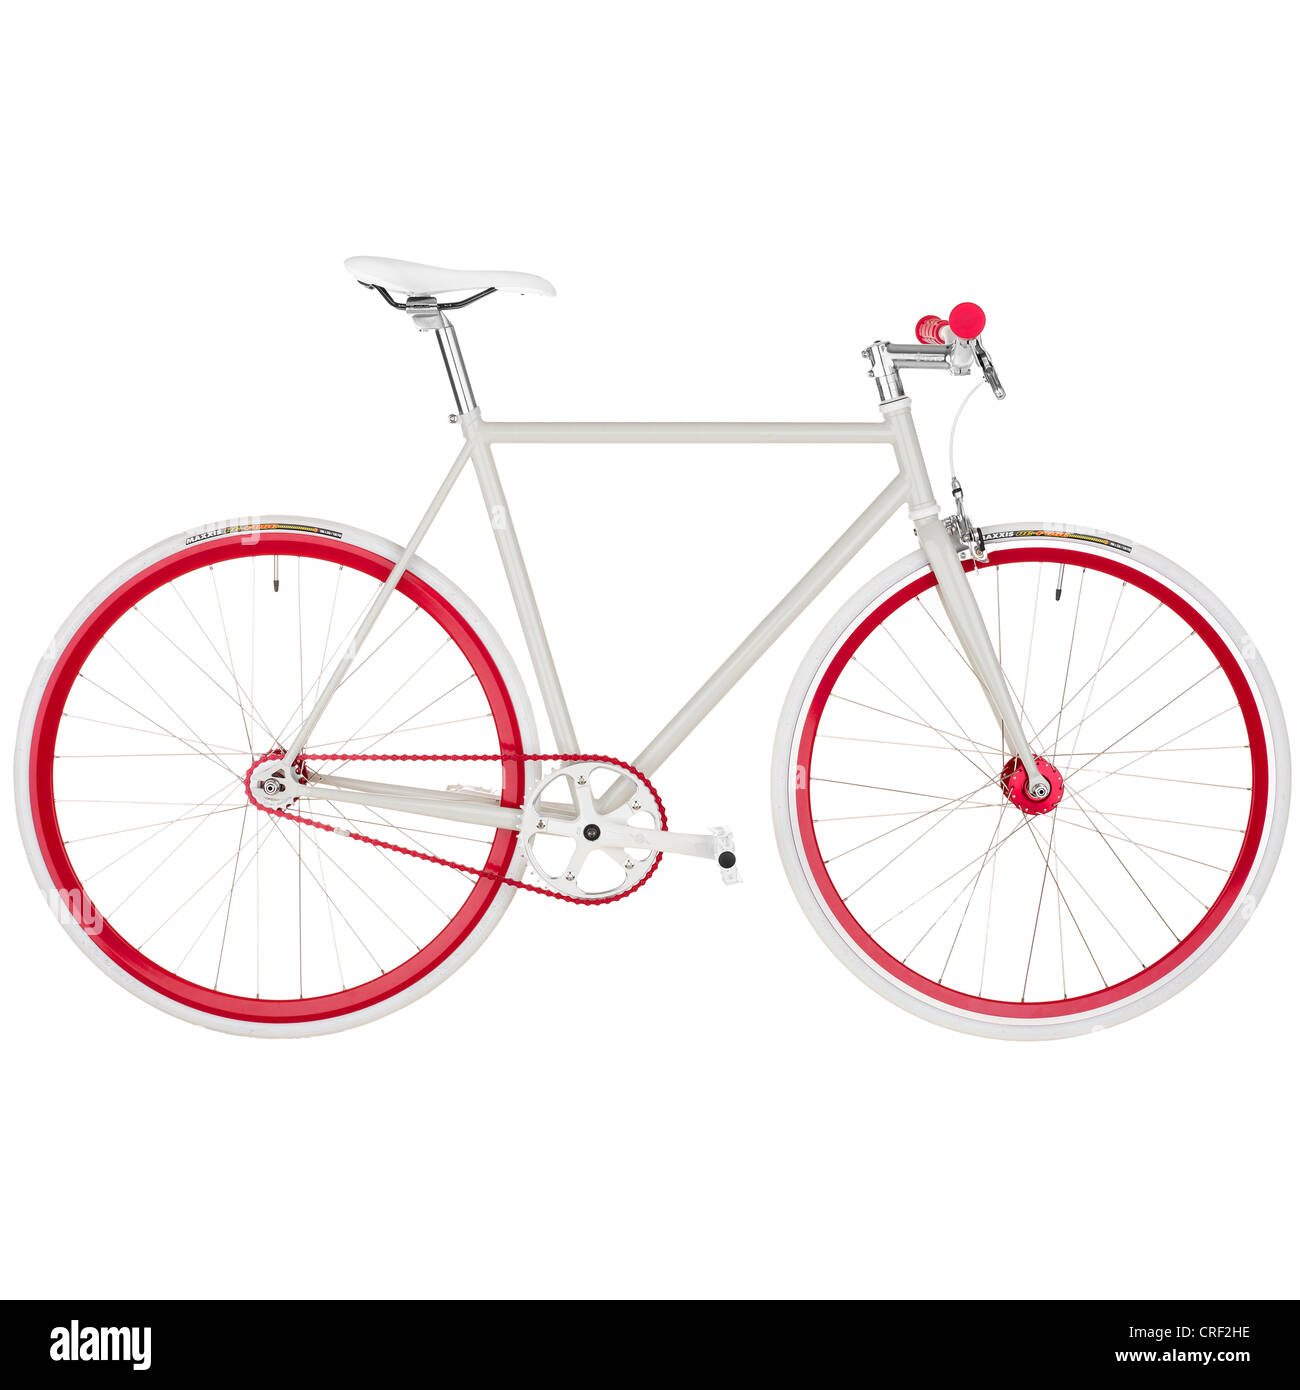 Red and White Bike. Fixed gear. - Stock Image